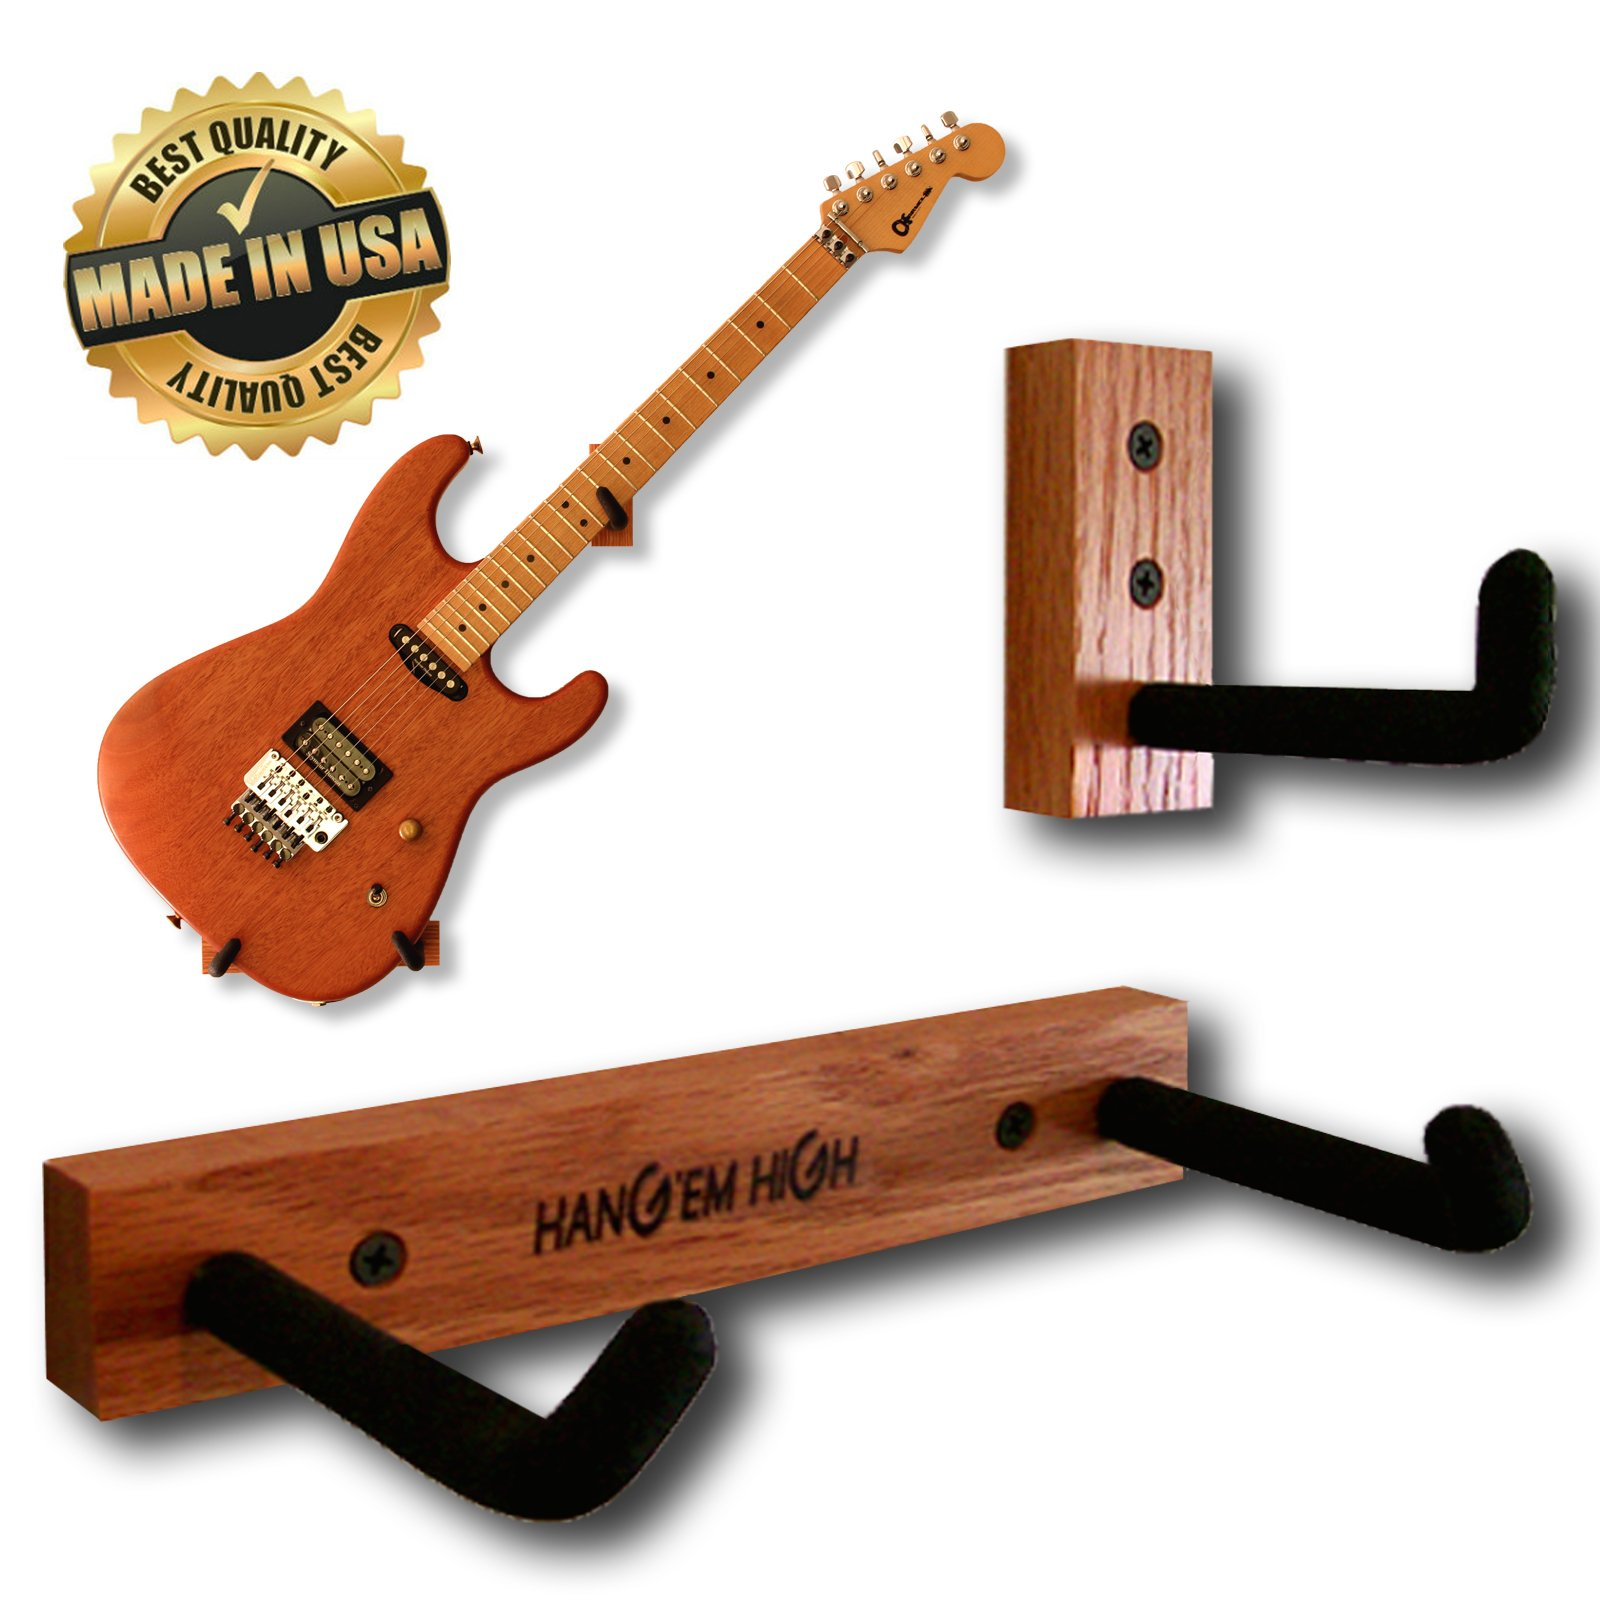 Angled Guitar Wall Hanger Display for Electric and Thin Body Guitars- Classic Finish by Hang'em High Guitar Hangers (Image #1)